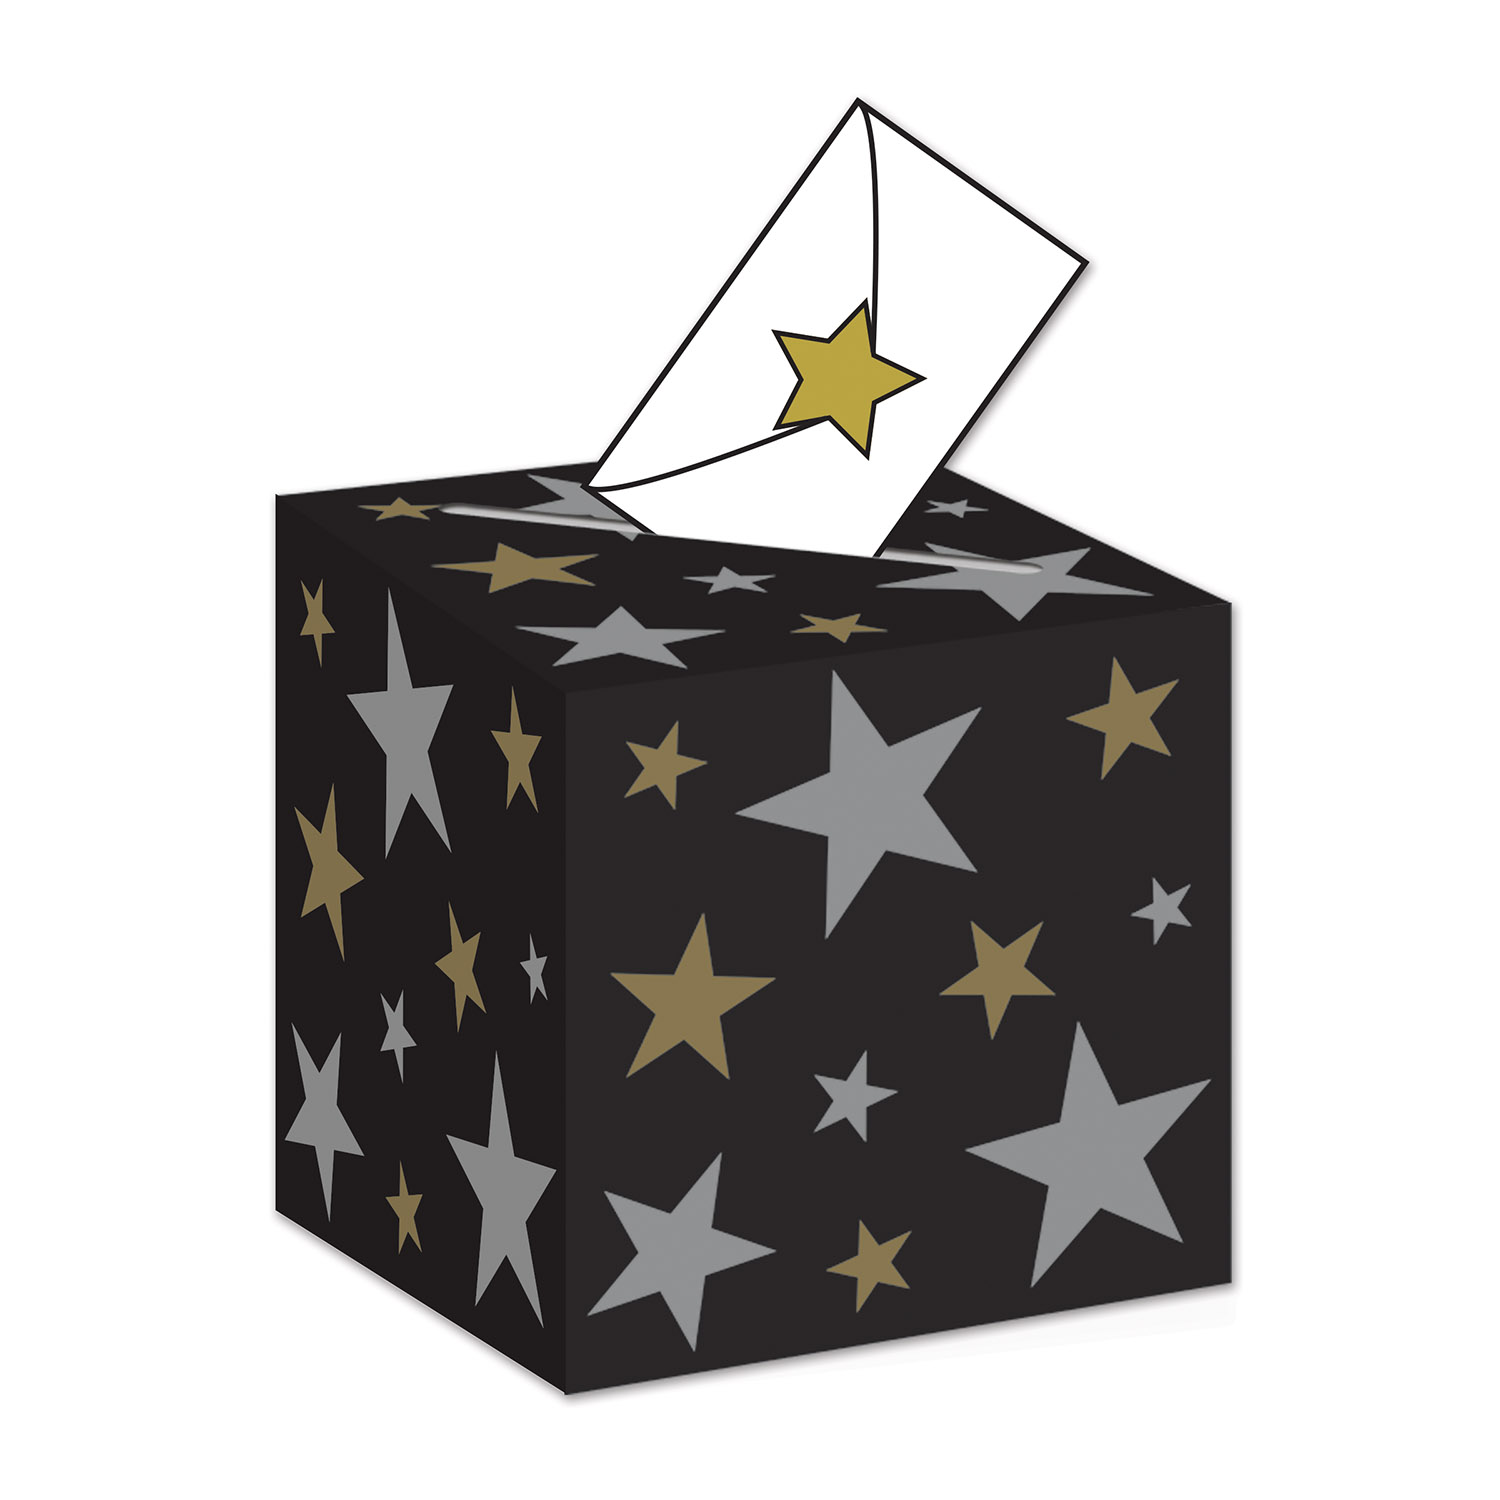 Awards Night Ballot Box (Pack of 6) Awards Night Ballot Box, decoration, hollywood, new years eve, black, gold, silver, stars, wholesale, inexpensive, bulk